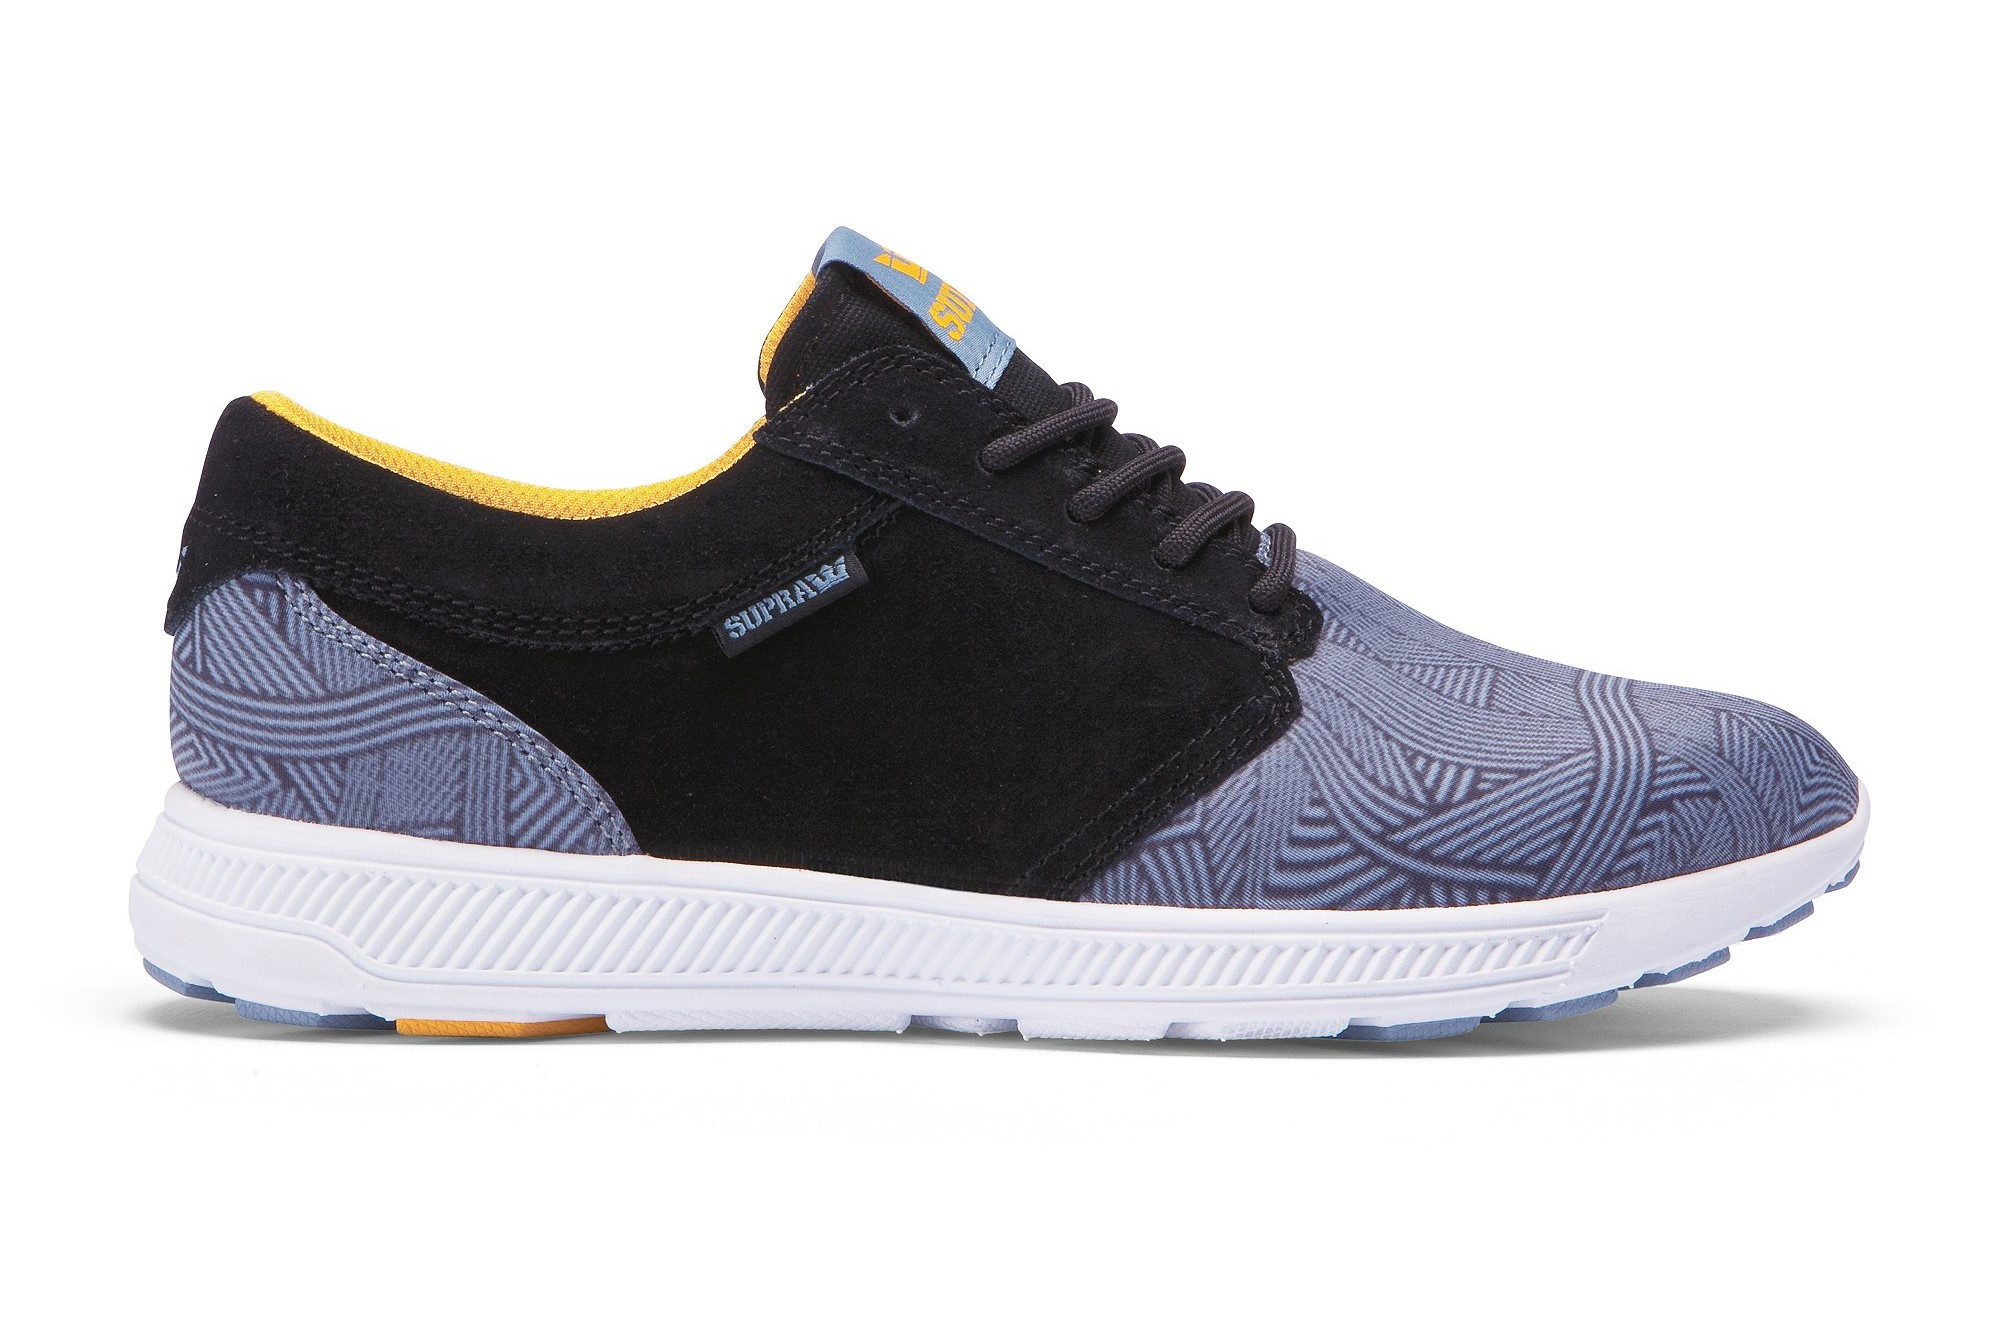 Supra Chaussures  HAMMER RUN Black blue print white Multicolore - Chaussures Baskets basses Homme